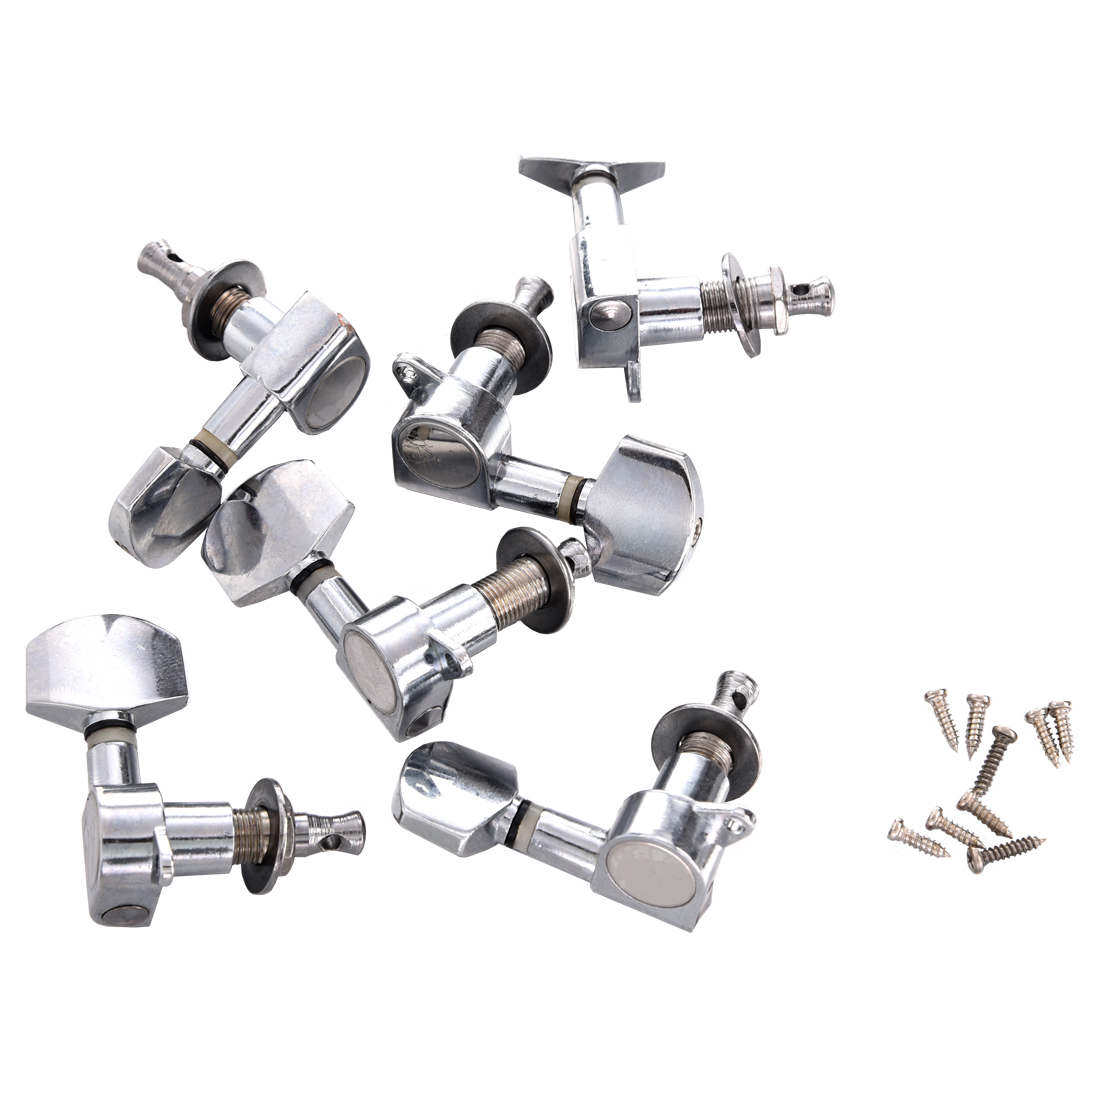 SALES 5xNew 6 pcs Chrome Guitar String Tuning Pegs Tuners Machine Heads a set chrome sealed gear tuning pegs machine heads tuners for guitar with black big square wood texture buttons